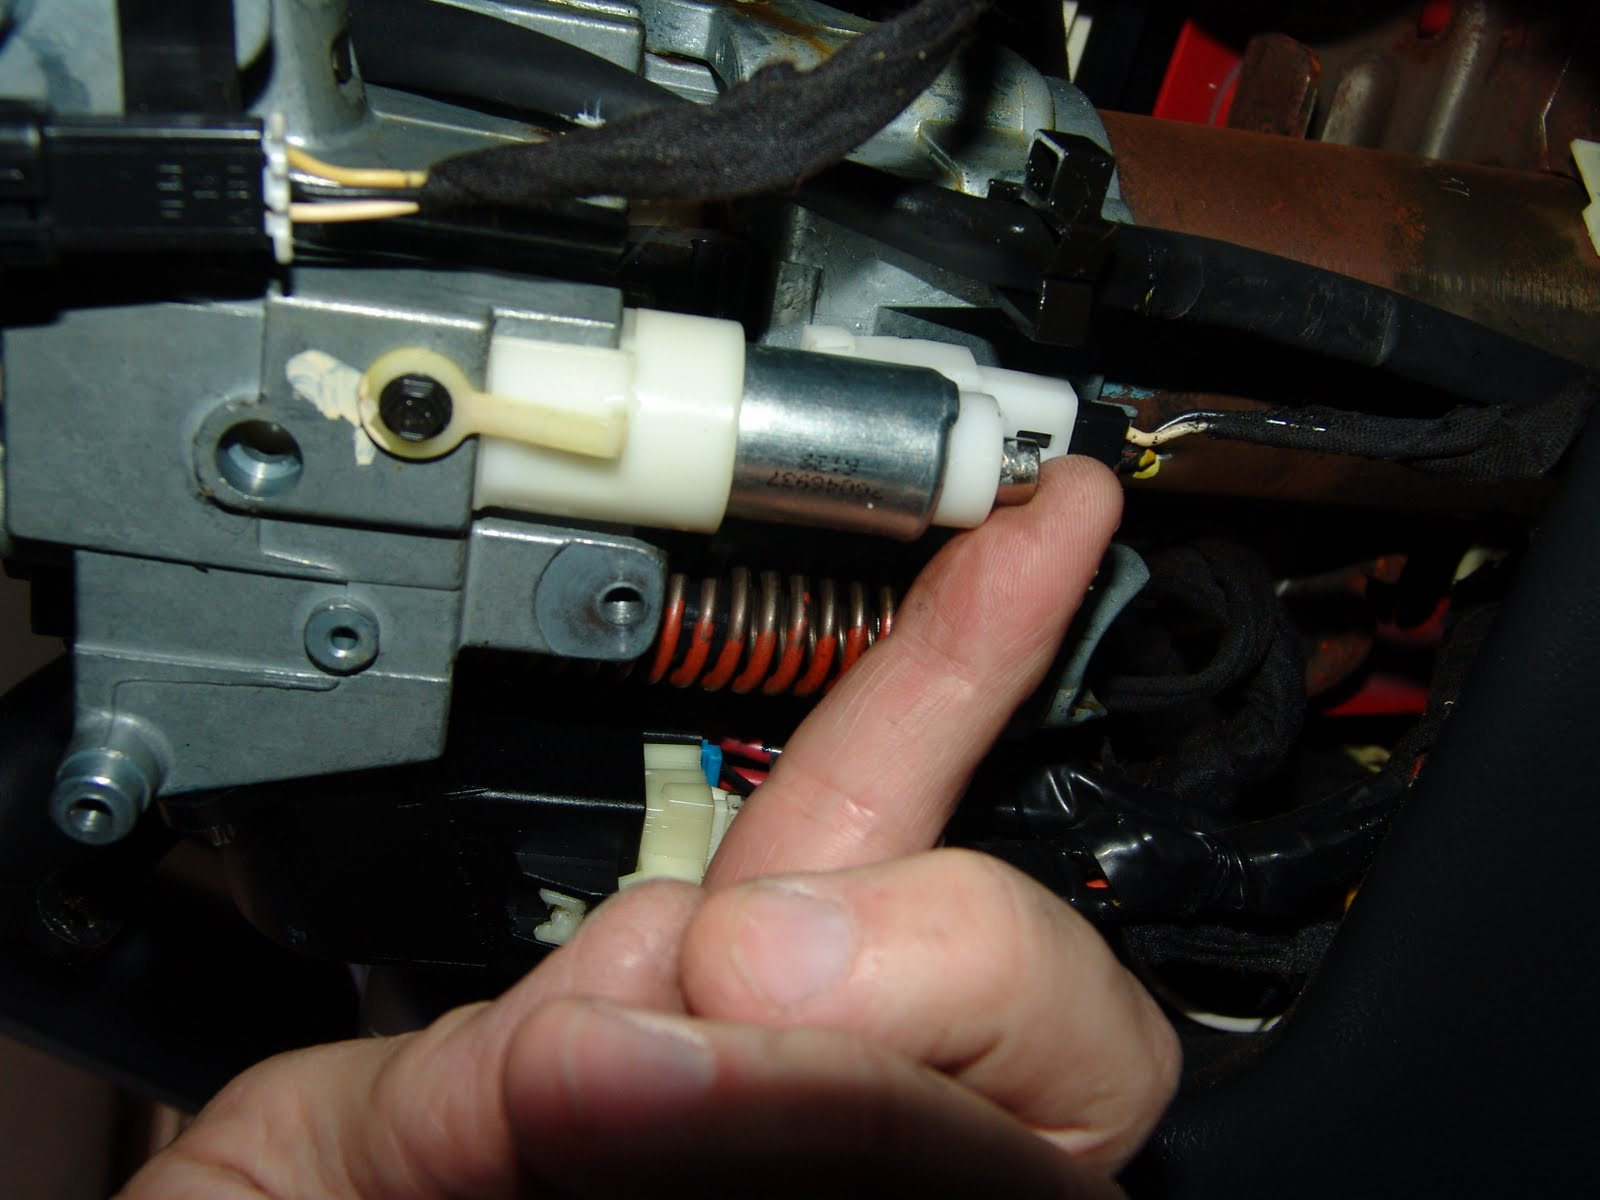 2001 pontiac bonneville 3800 with Pontiac Grand Prix  Puter Location on ShowAssembly furthermore Pontiac Starter Solenoid Wiring Diagram together with 3800 V6 Engine Diagram furthermore T5892849 Serpentine belt routing diagram 2006 further Pulley Change Index 285990.